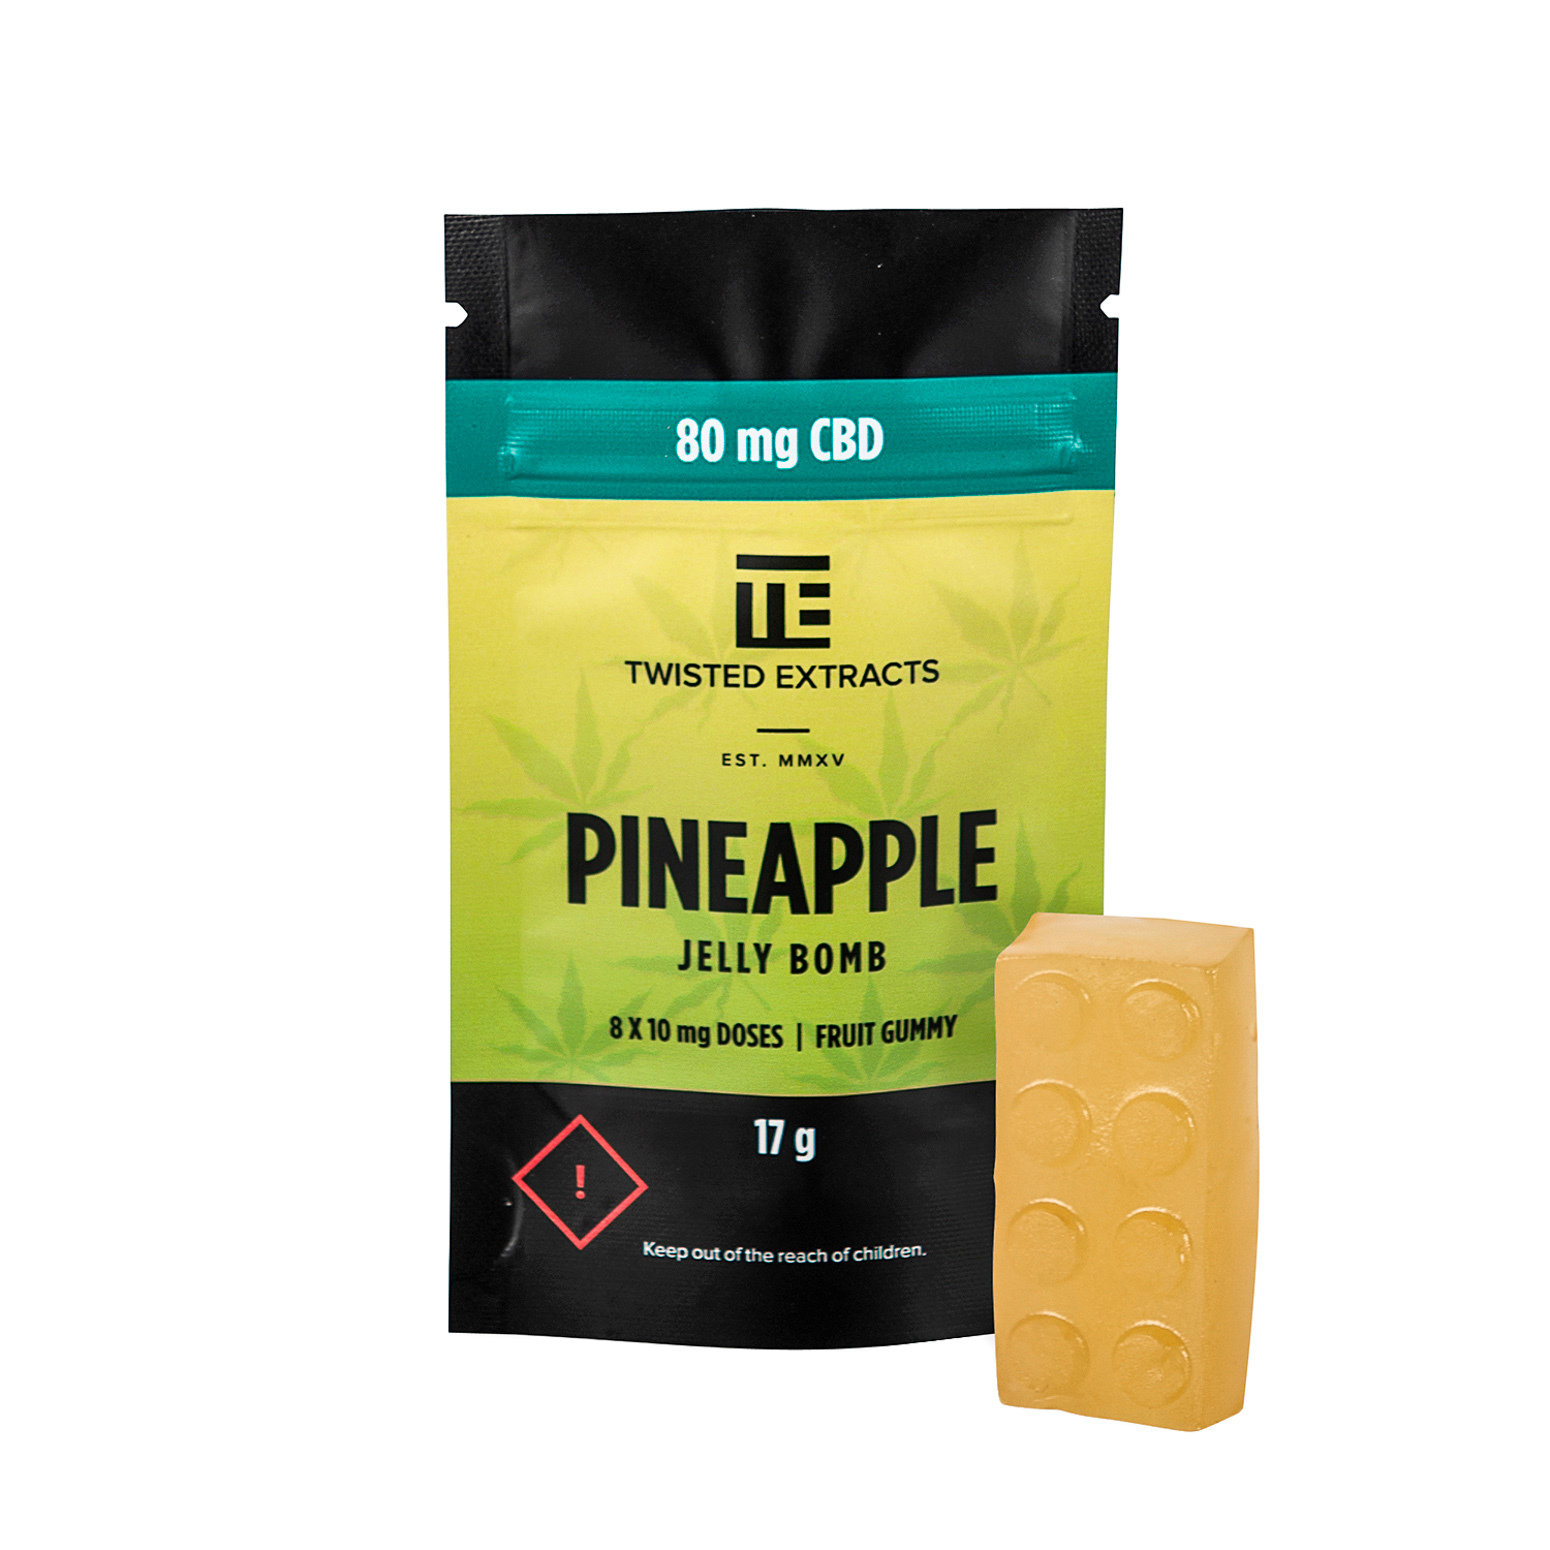 80mg CBD Pineapple Jelly Bomb by Twisted Extracts 00008